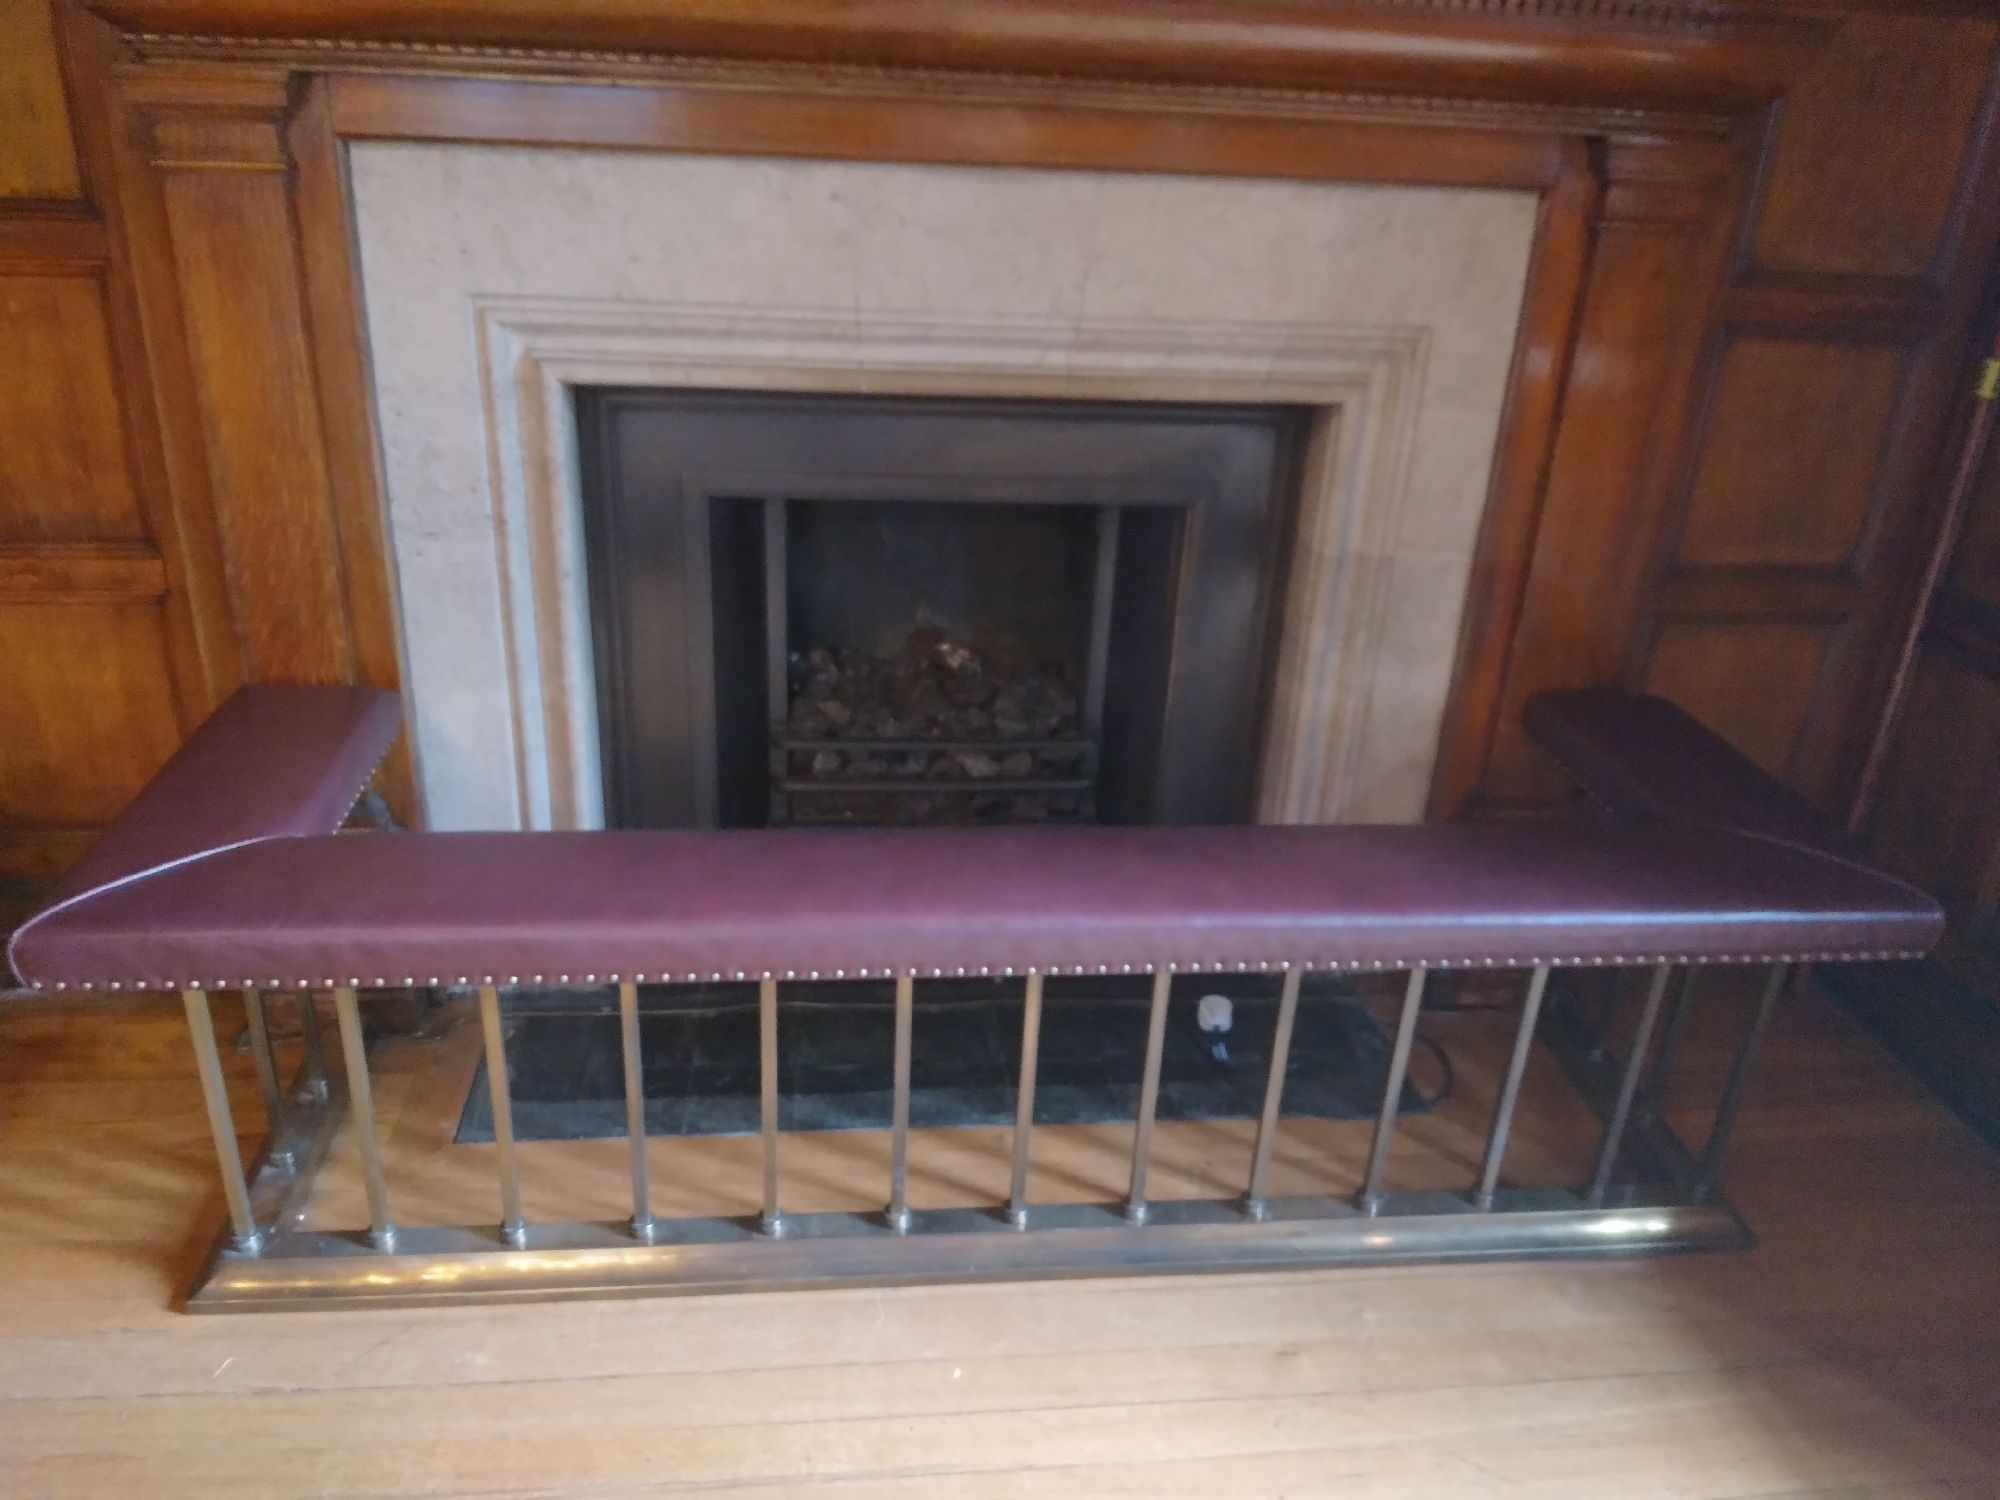 I hear you thinking, now why is there a padded seat round the fireplace? No idea.